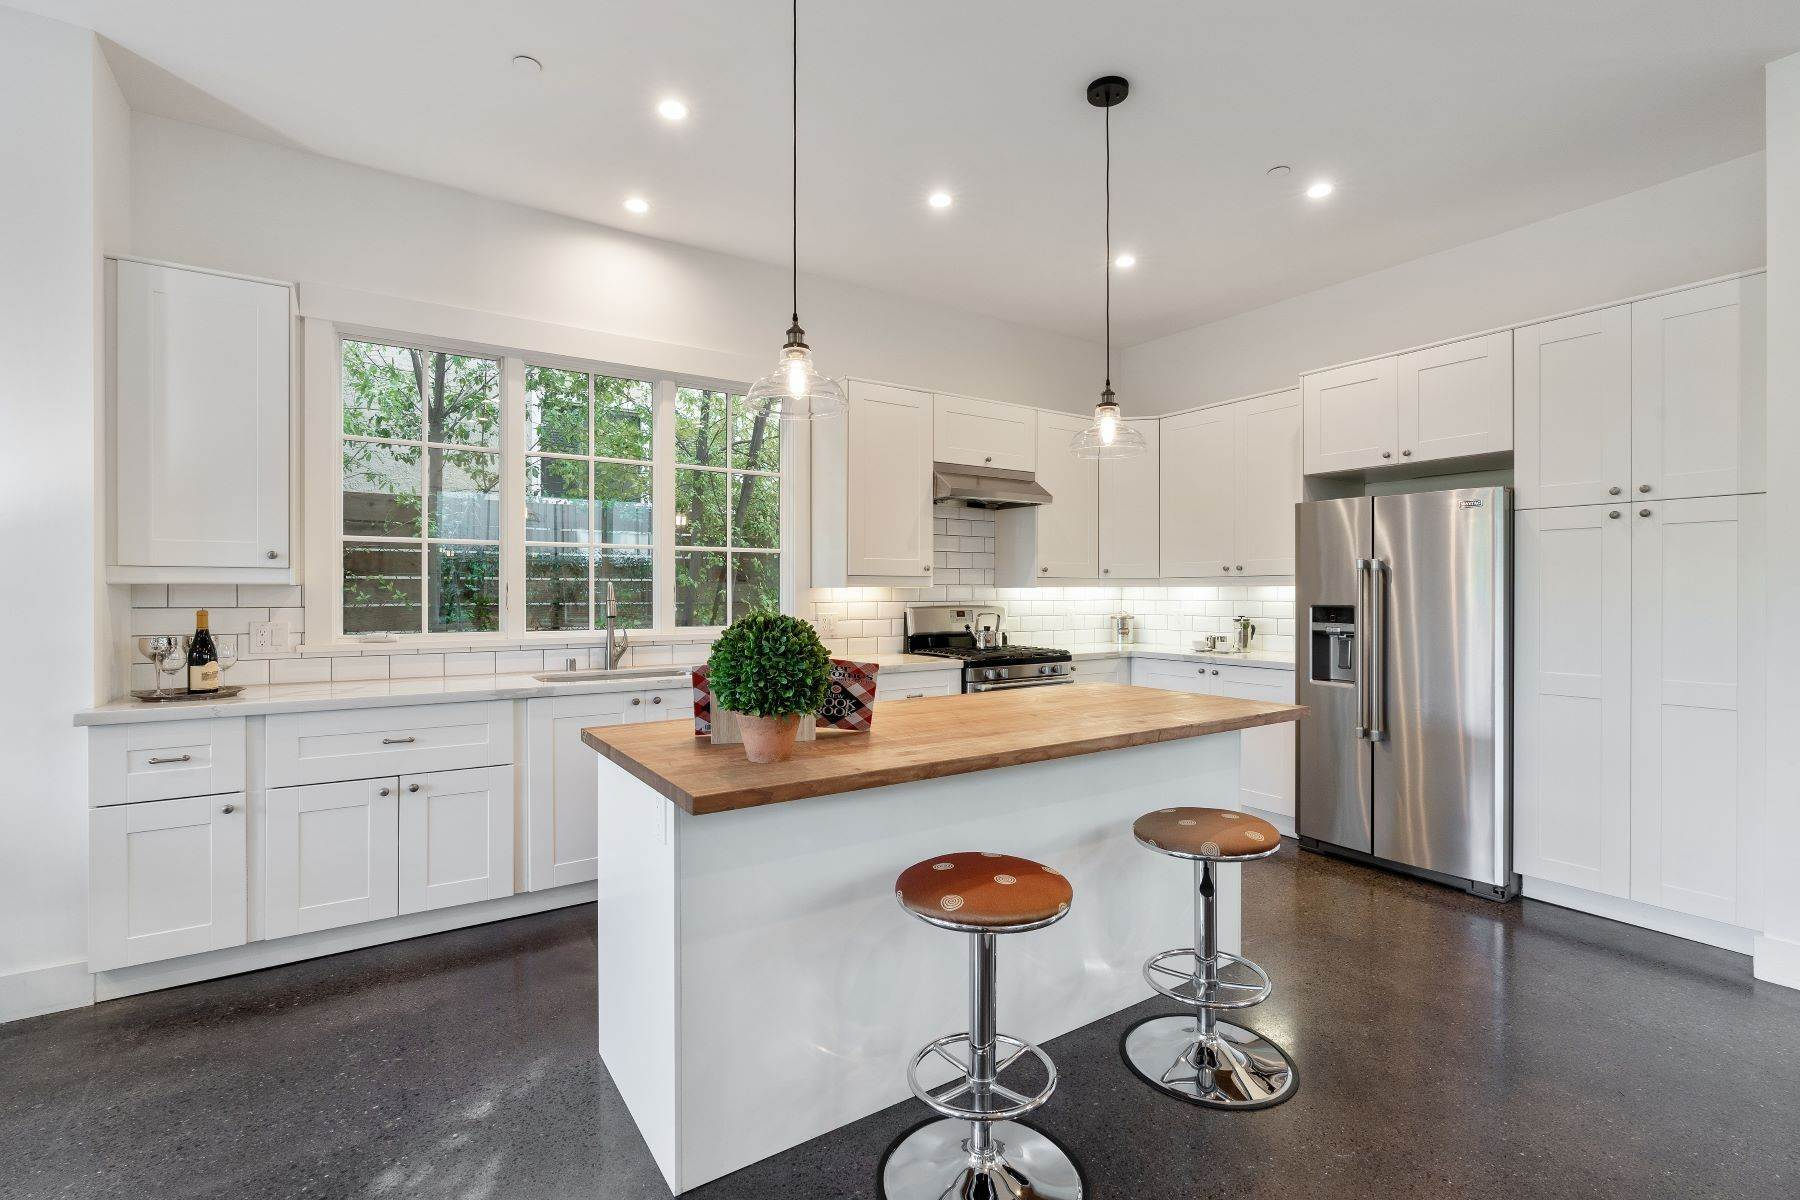 15. Single Family Homes for Sale at Modern Meets Comfort 888 59th Street Oakland, California 94608 United States